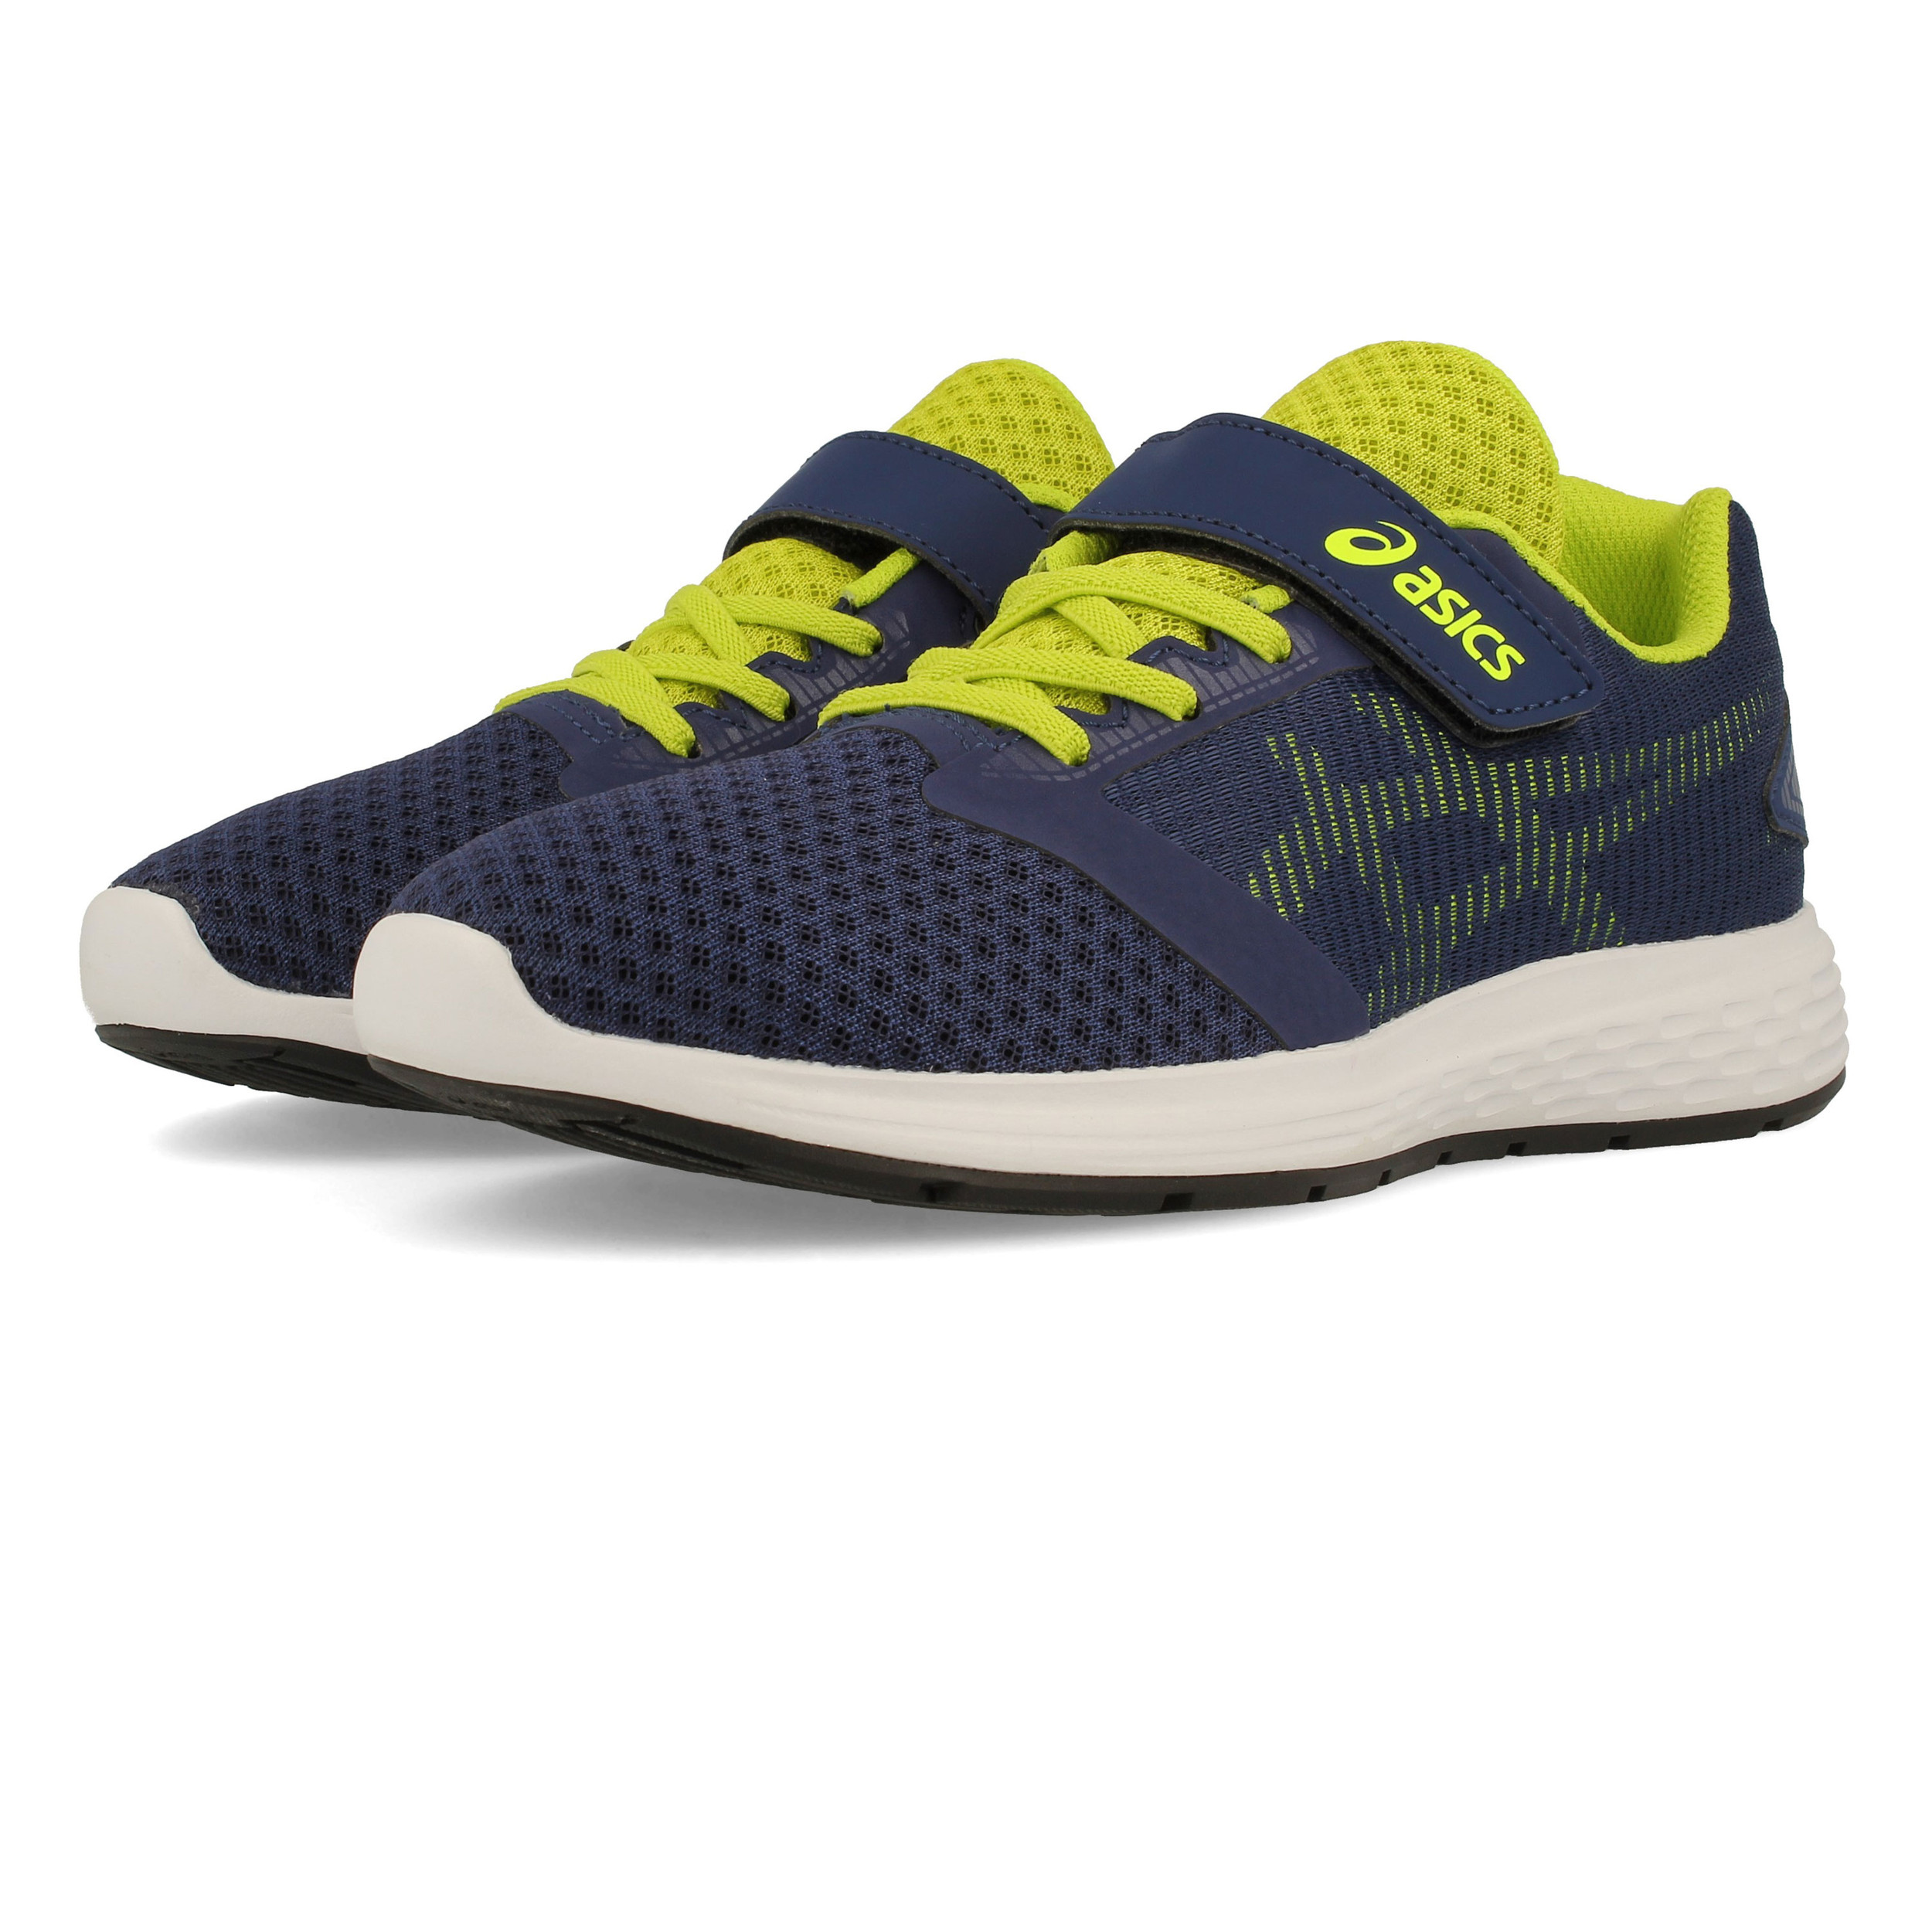 Asics Mens Patriot 10 Running Shoes Trainers Sneakers Blue Sports Breathable